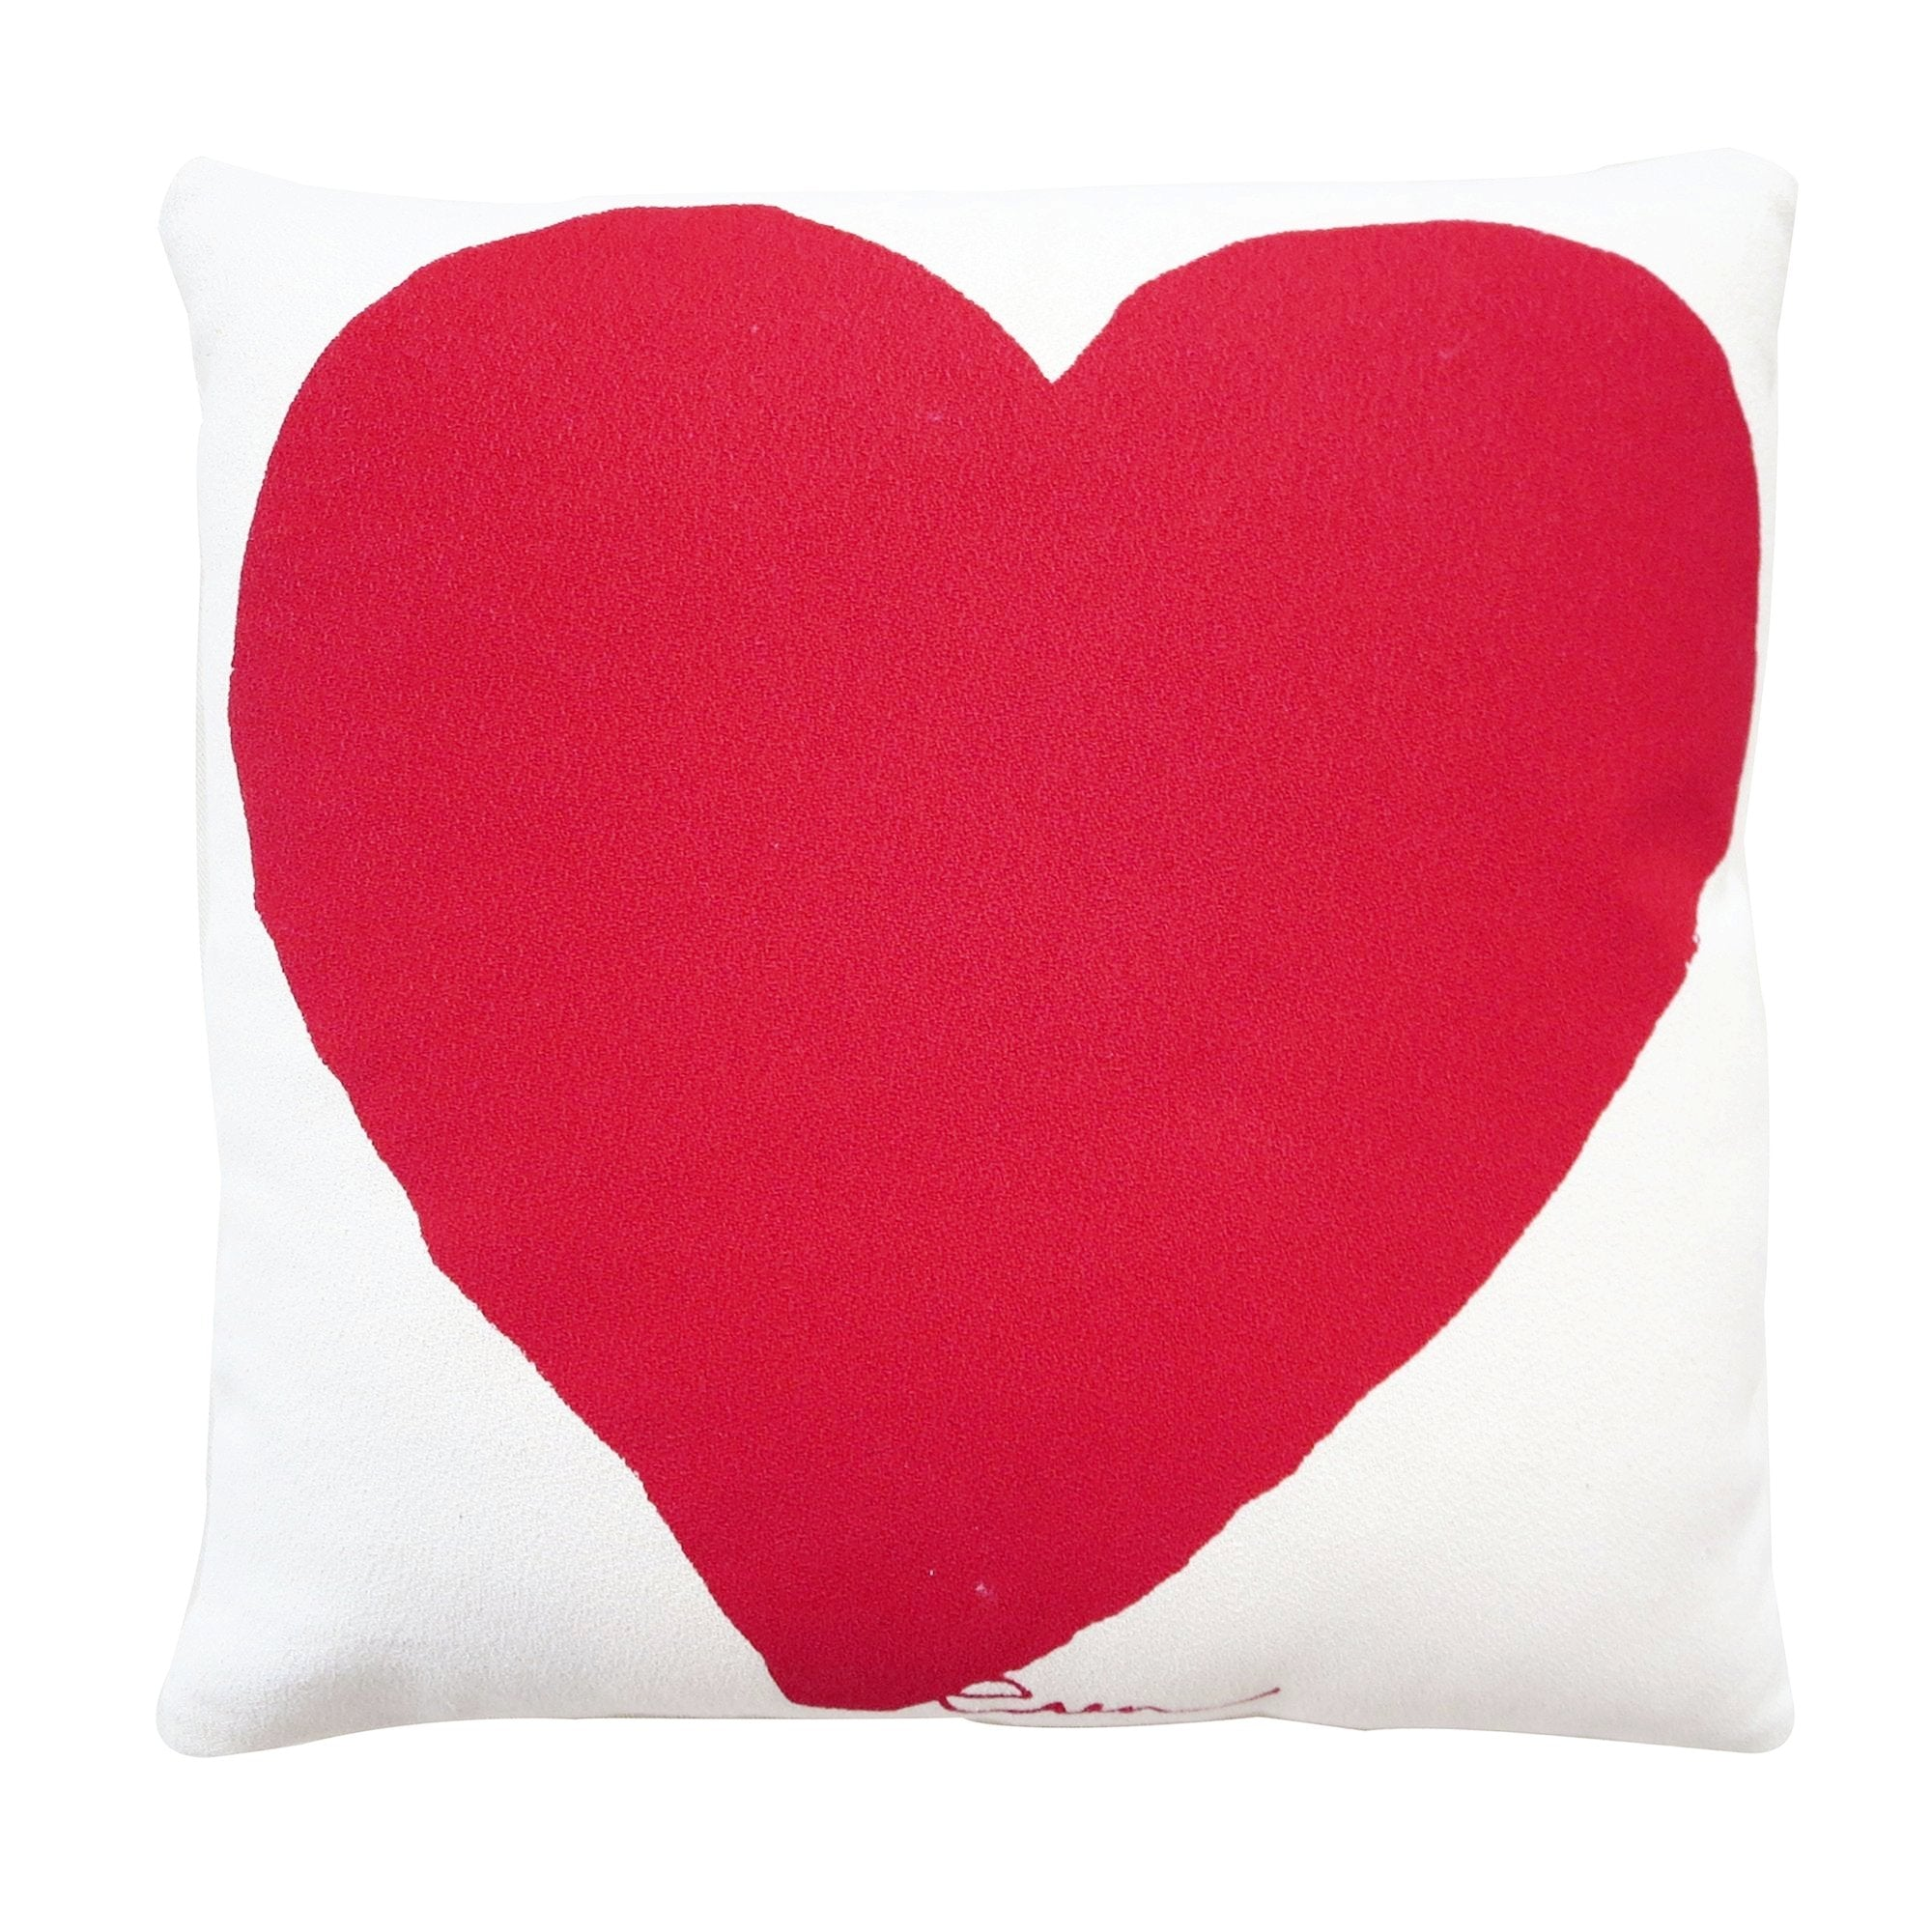 HEART PILLOW COVER IN RED